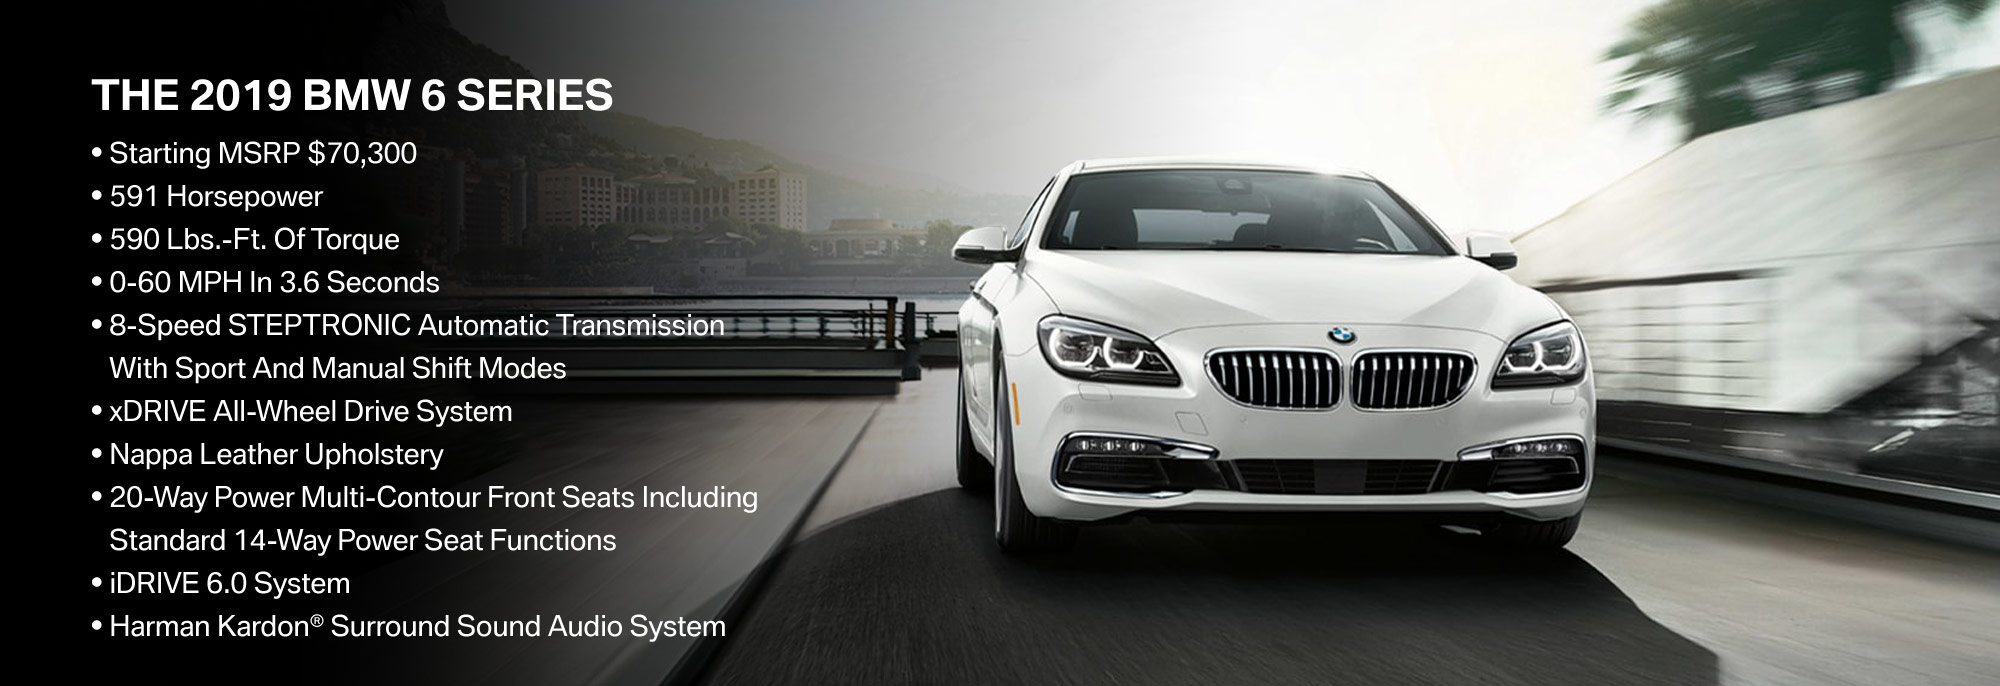 New 2019 BMW 6 Series Offer